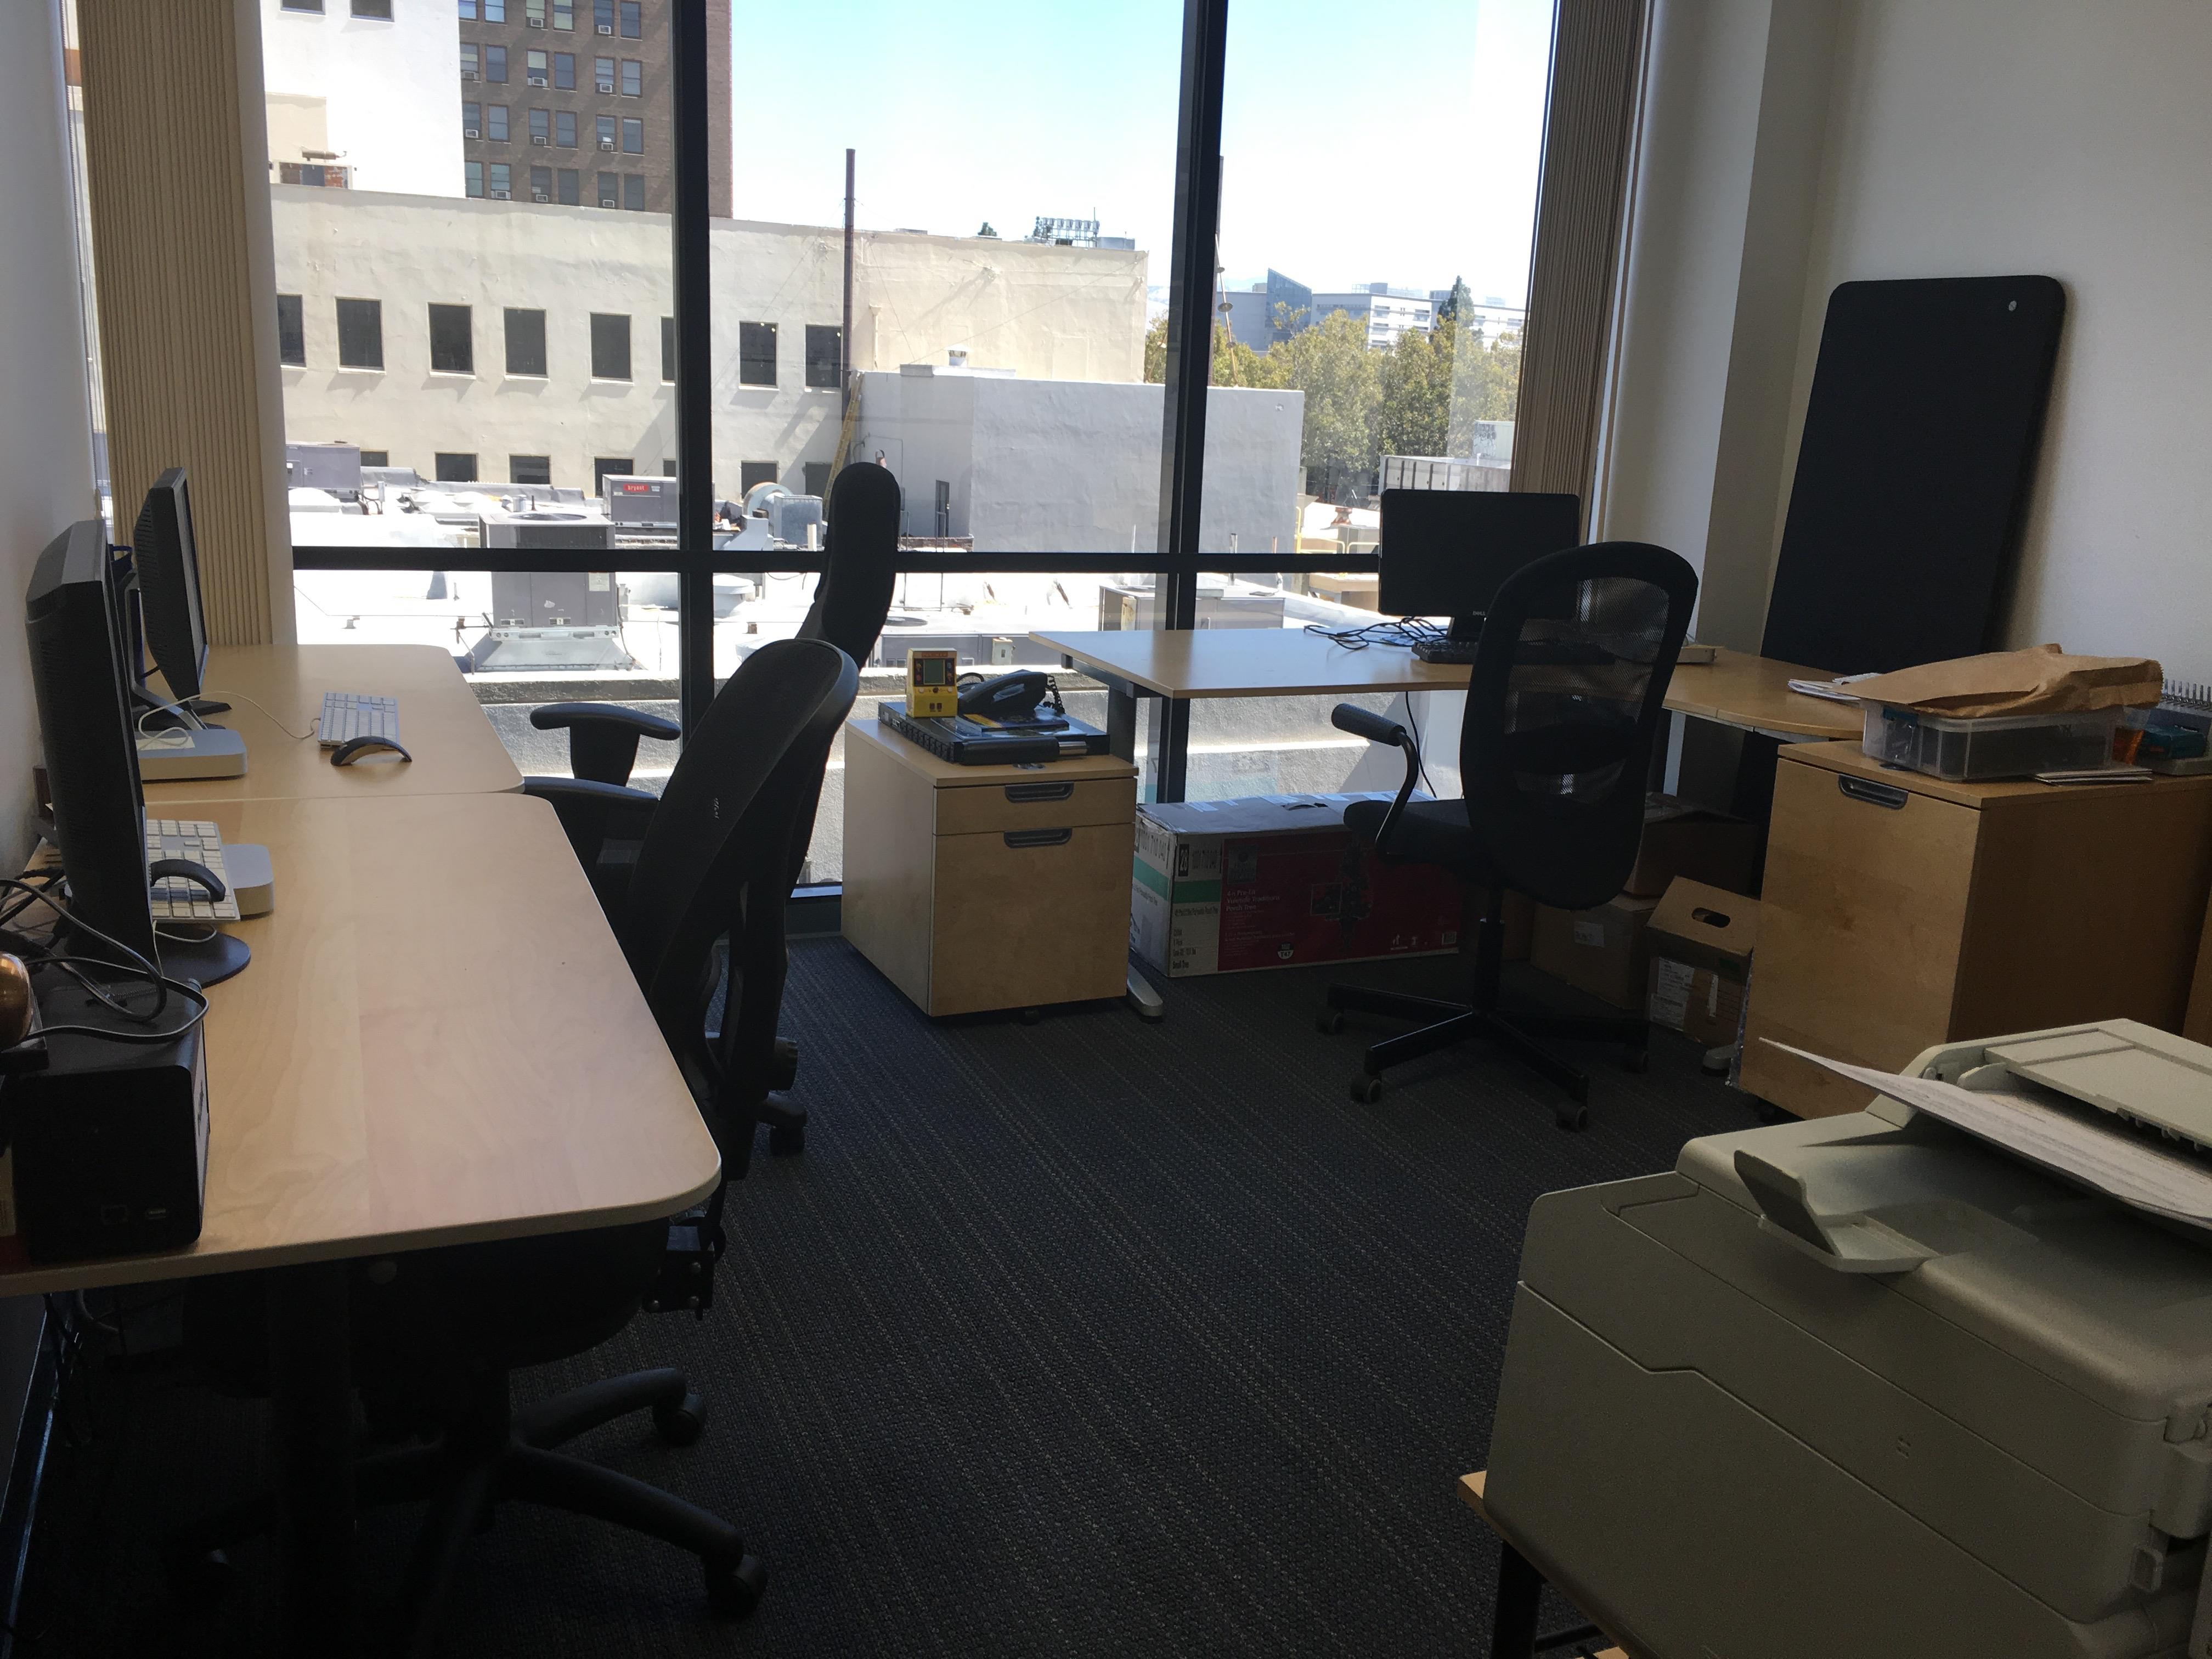 OpenTech Media, Inc. - Private office for 4-5